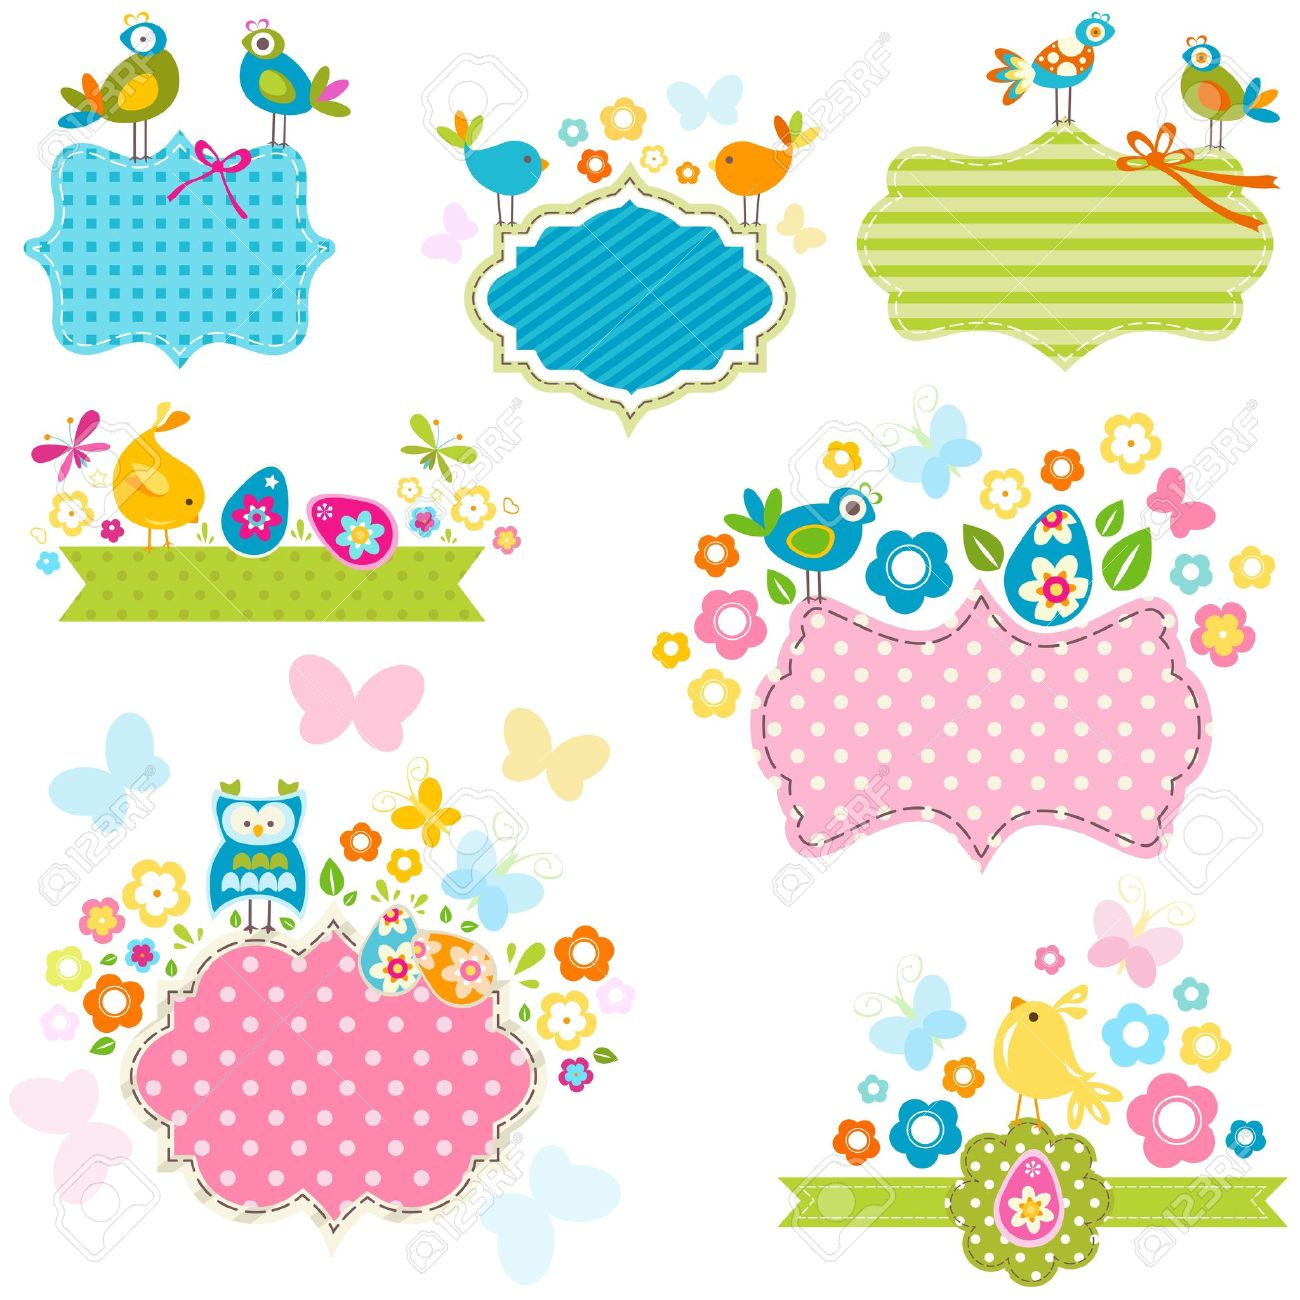 Easter Frames Set With Birds And Flowers Royalty Free Cliparts ...